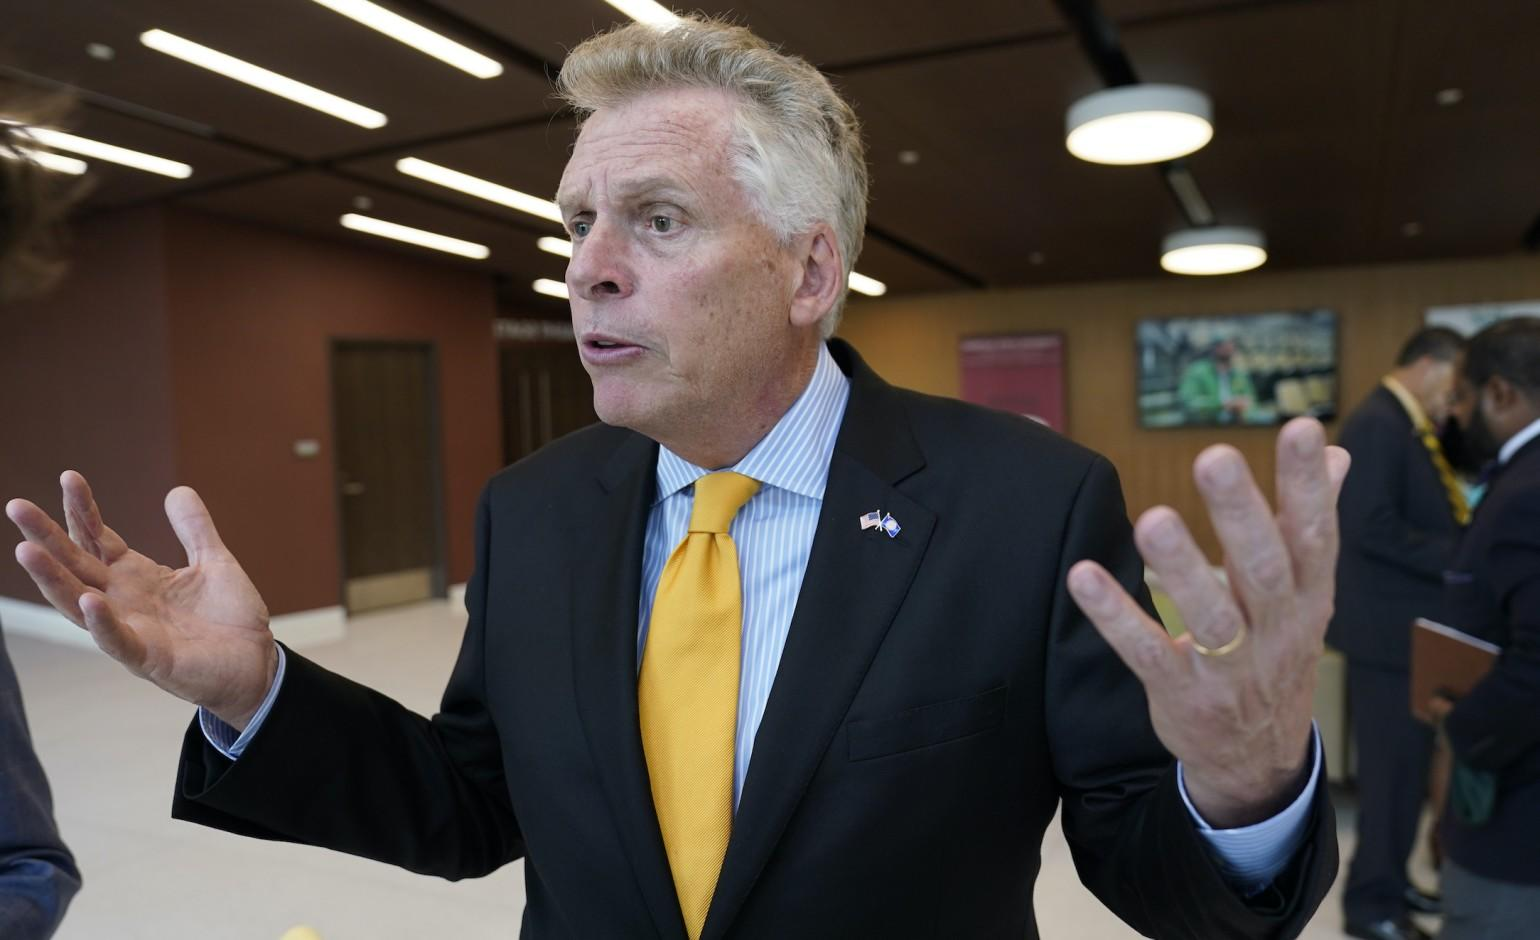 Virginia poll shows McAuliffe up over Youngkin but comes with warning signs